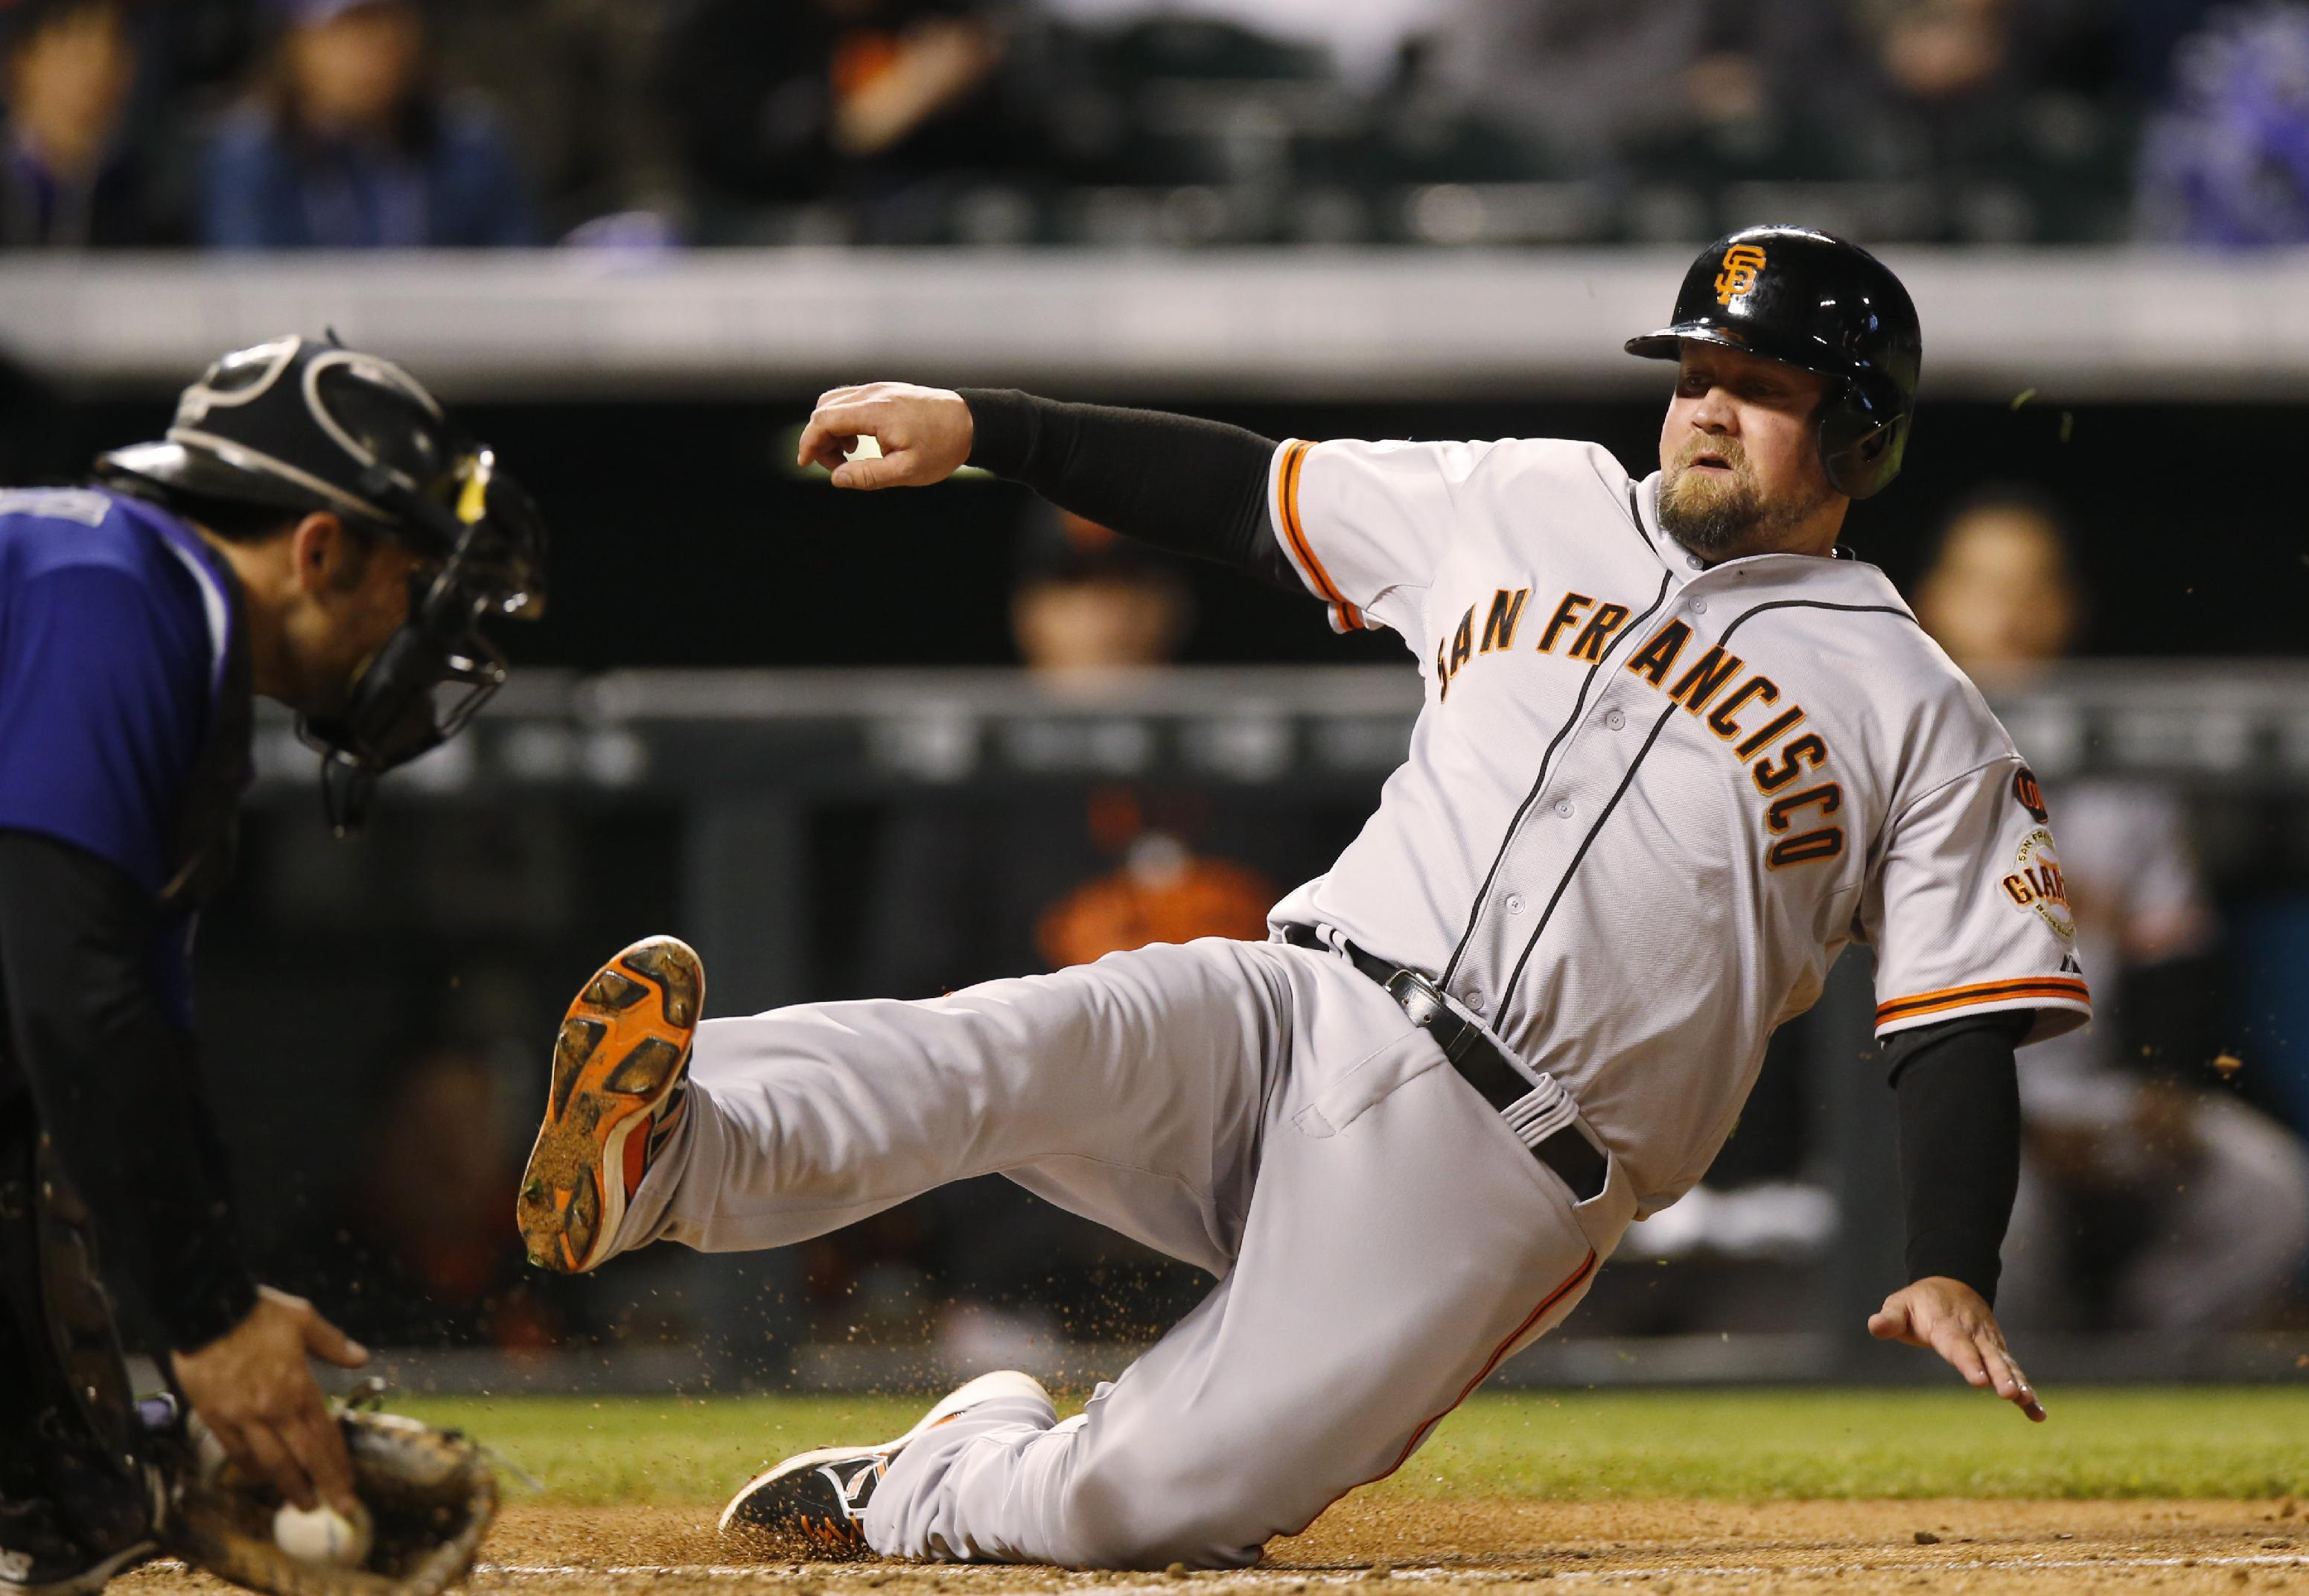 Giants 3B McGehee designated for assignment